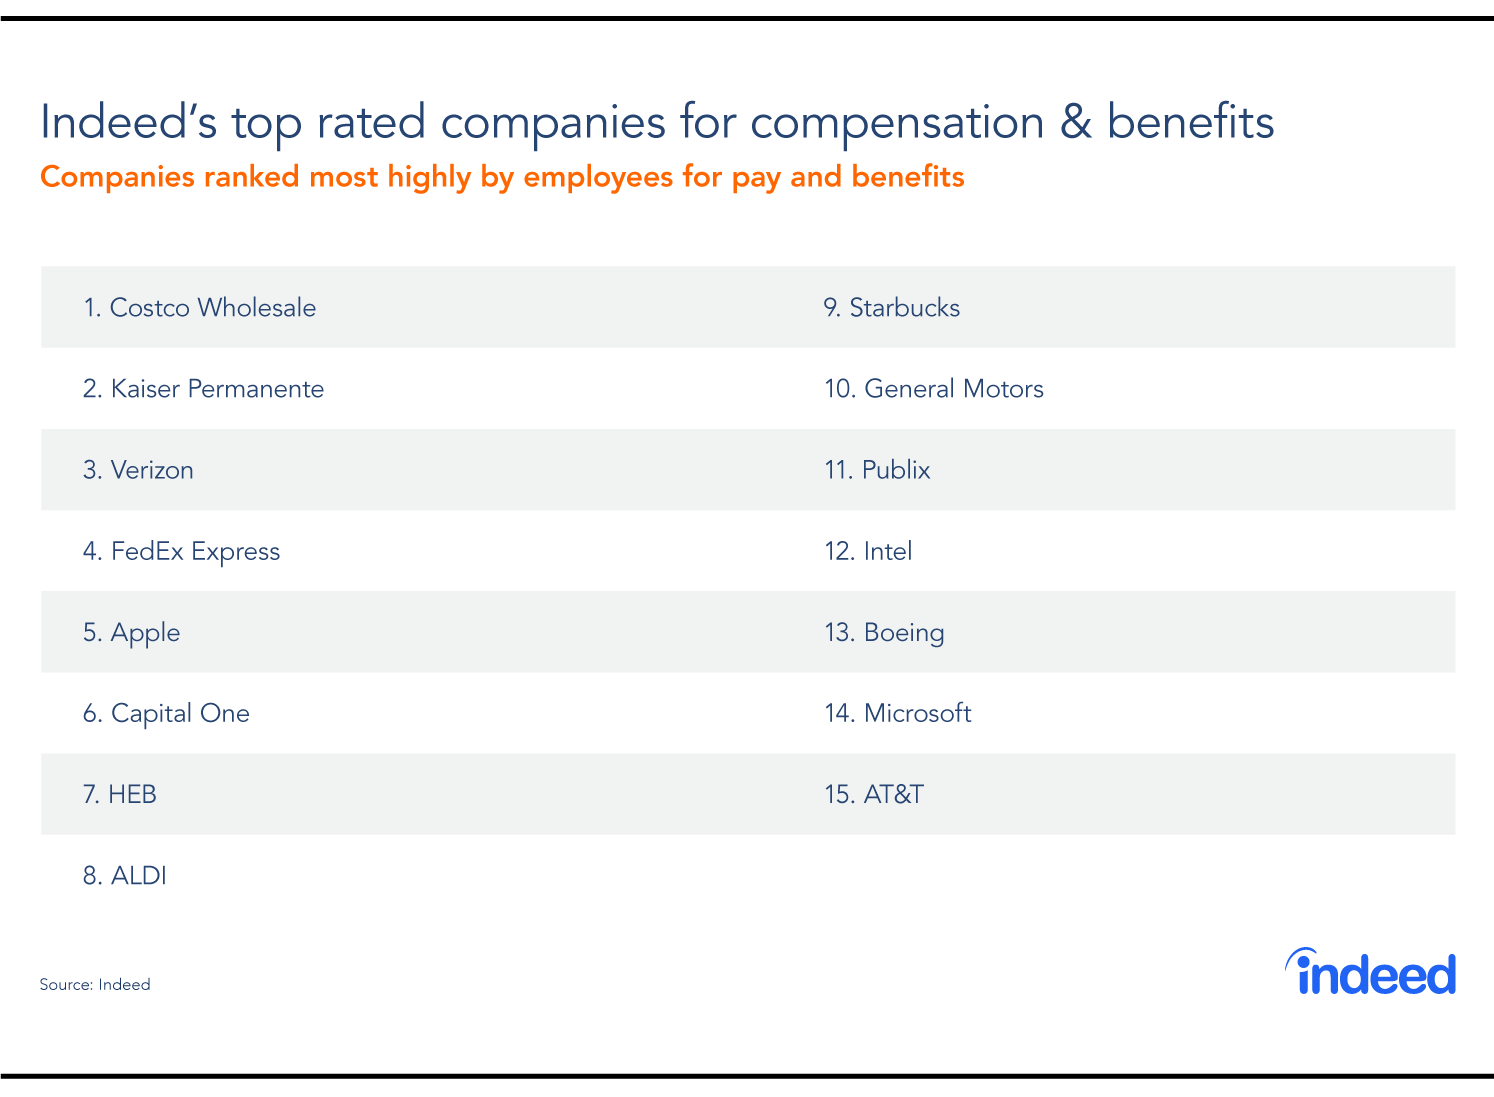 Table showing the 15 top-rated companies for compensation and benefits, ranked by Indeed users.